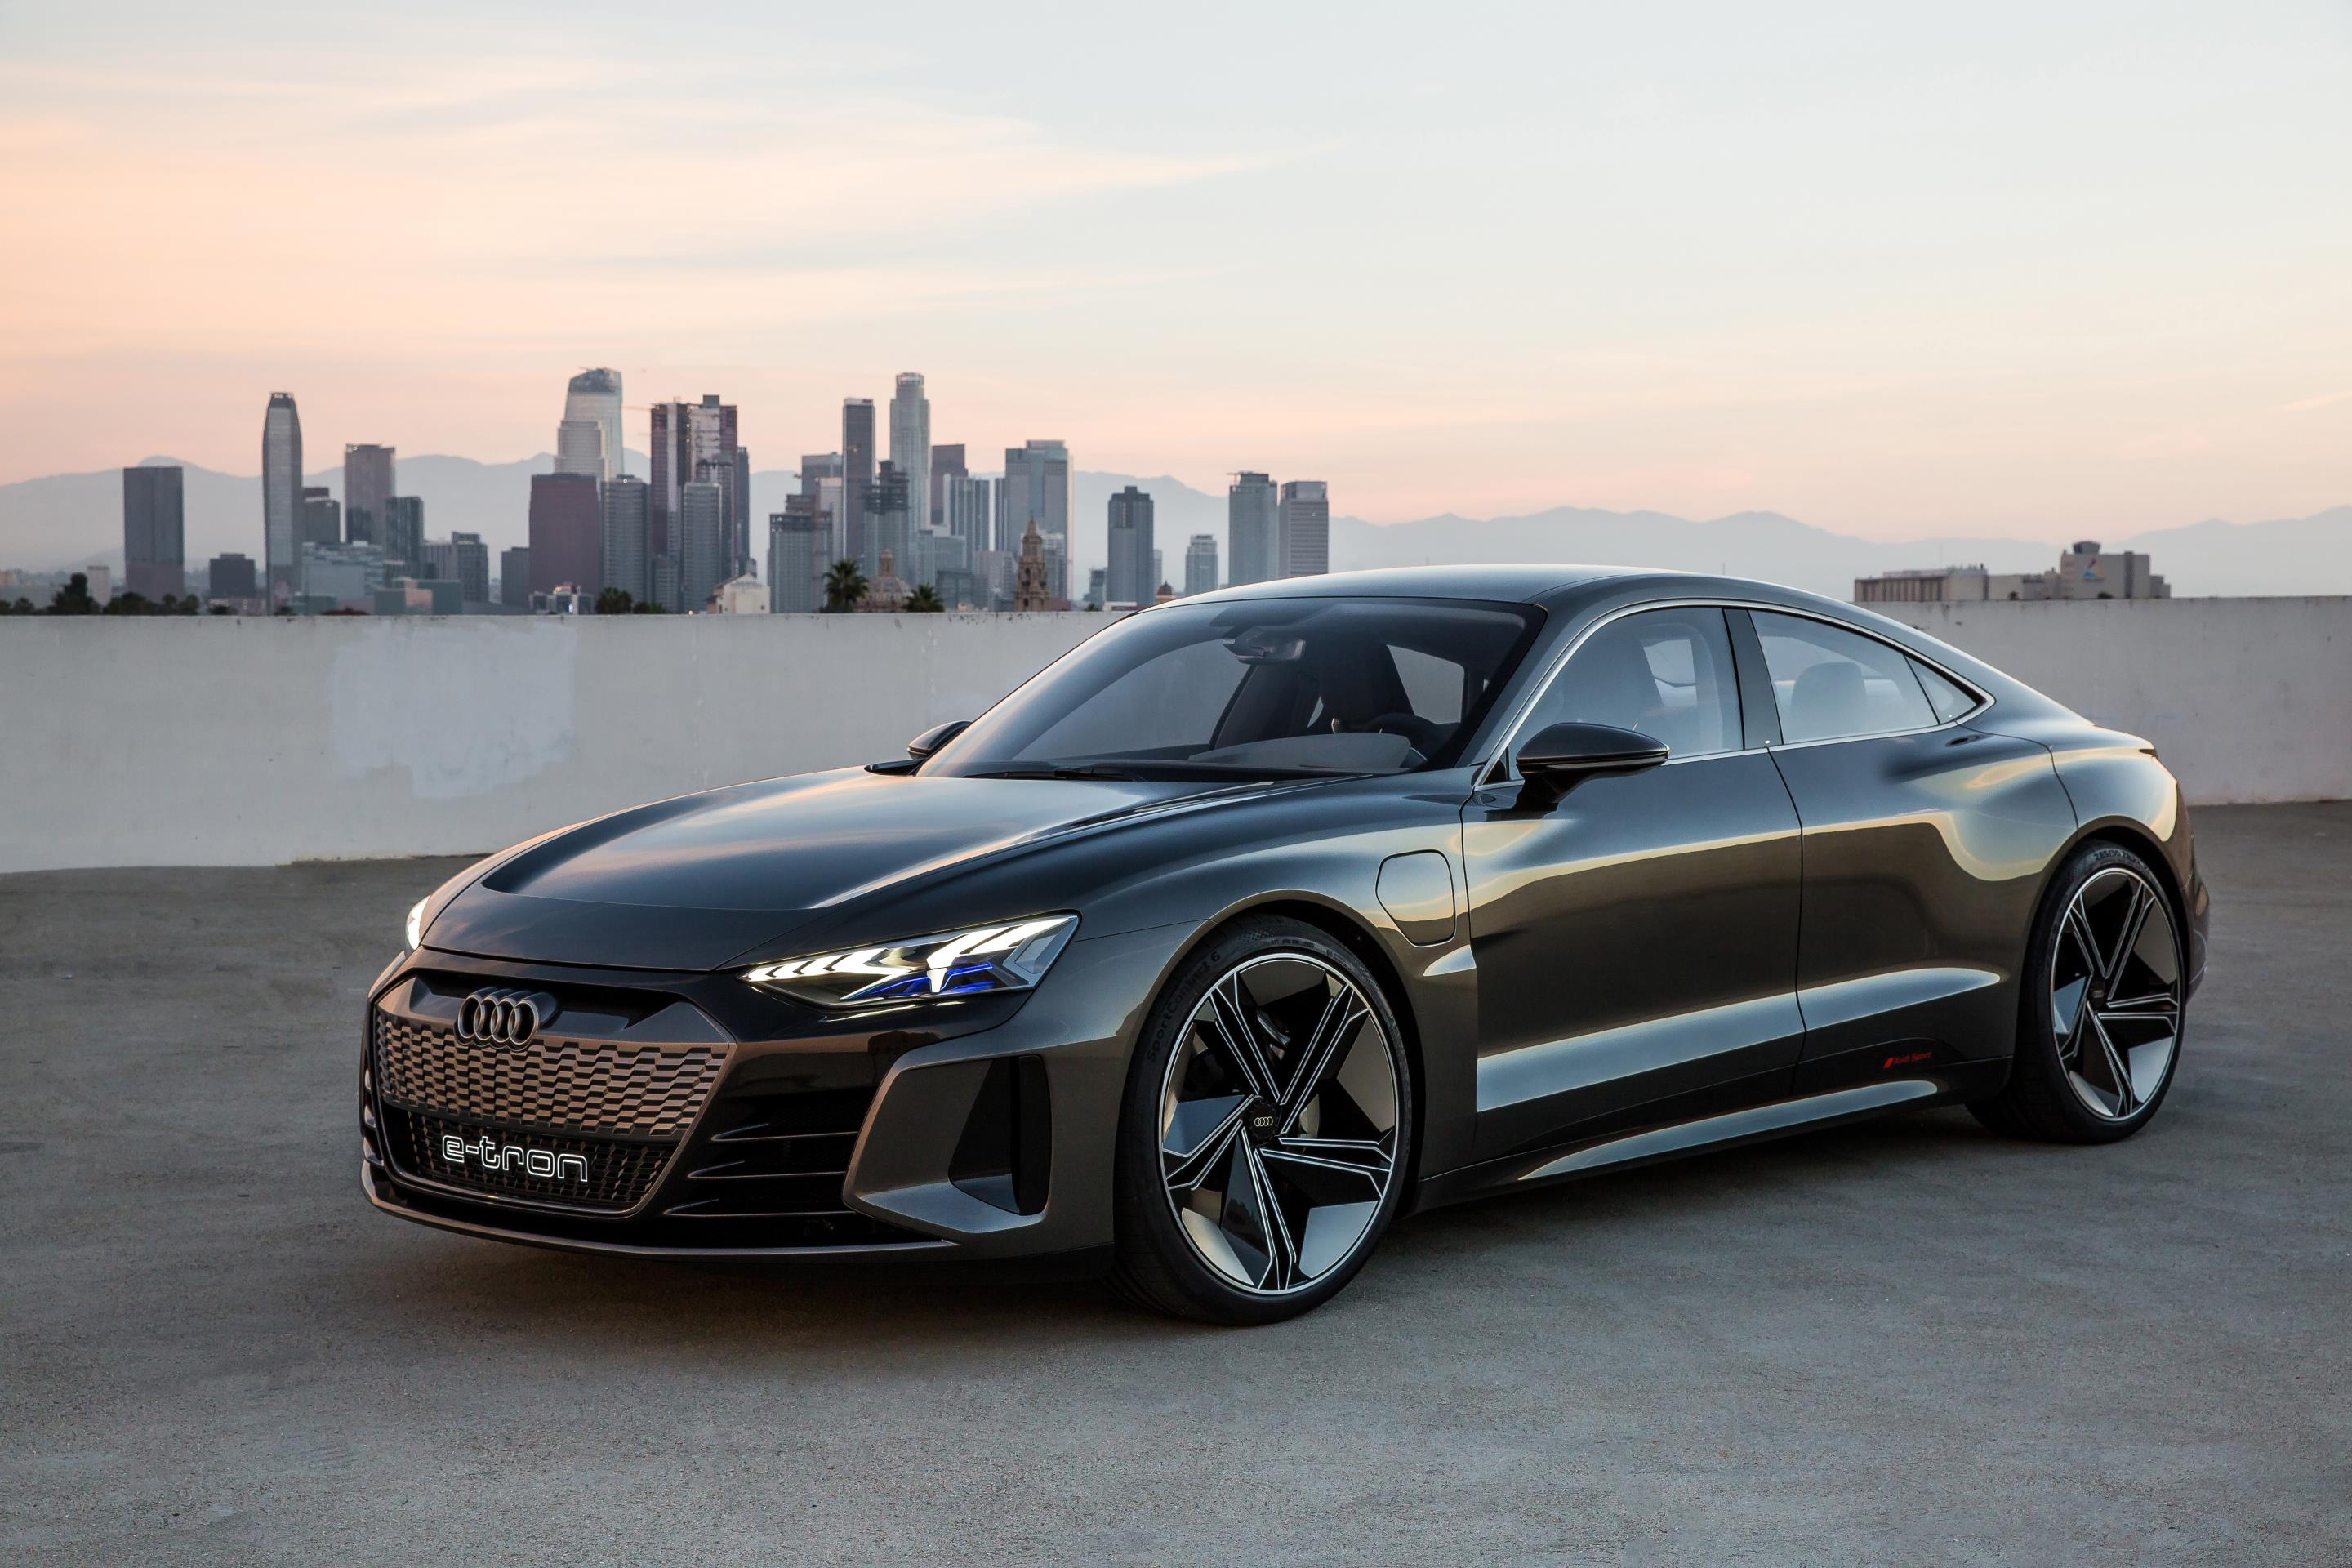 Audi unveils new E-Tron GT Concept electric vehicle